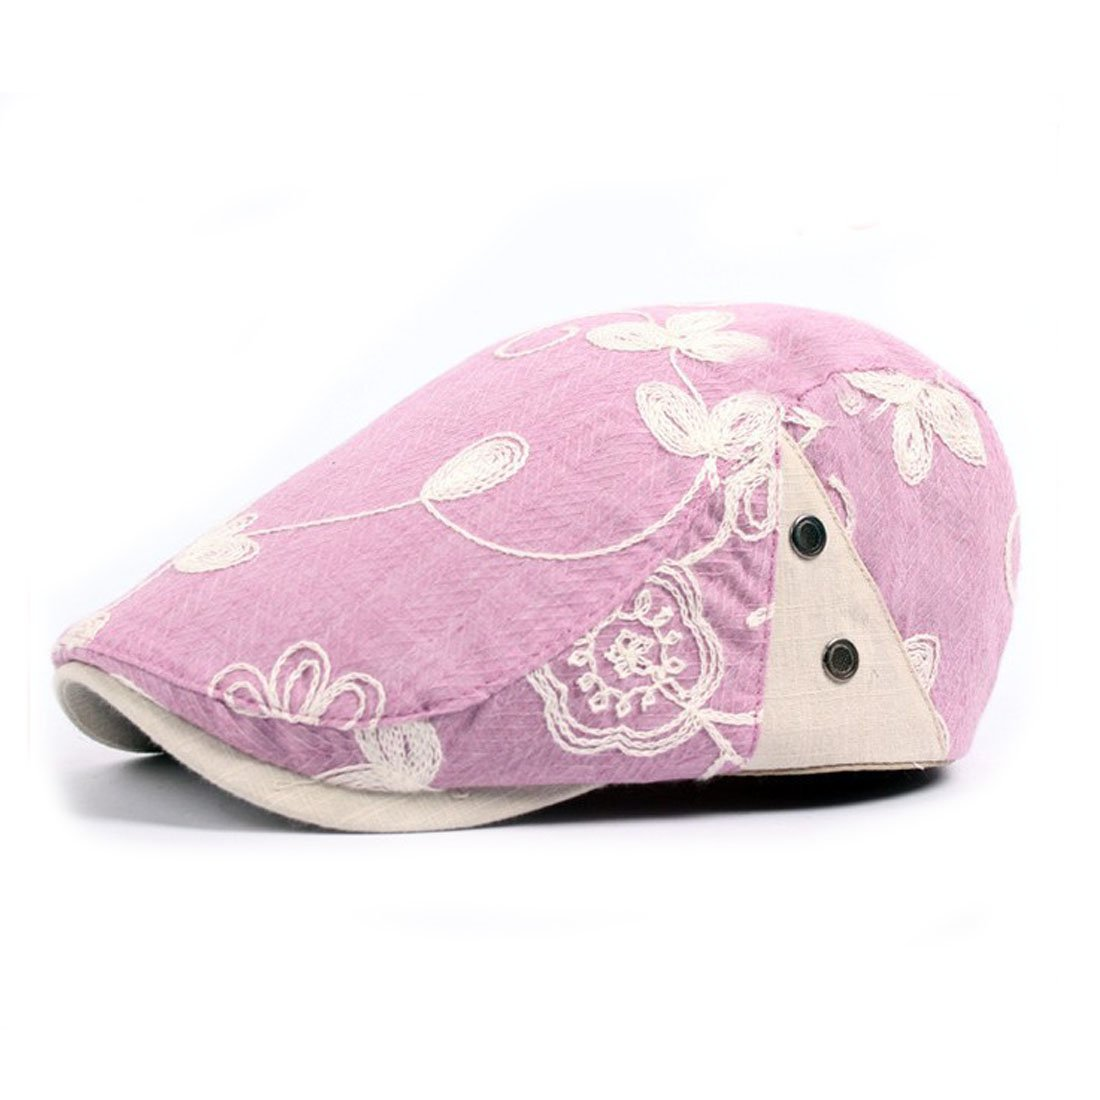 f803d94a King Star Flat Cap Gatsby Floral Embroidered Duckbill Hat Newsboy Ivy Irish  Cabbie Scally Cap Purple: Amazon.in: Clothing & Accessories